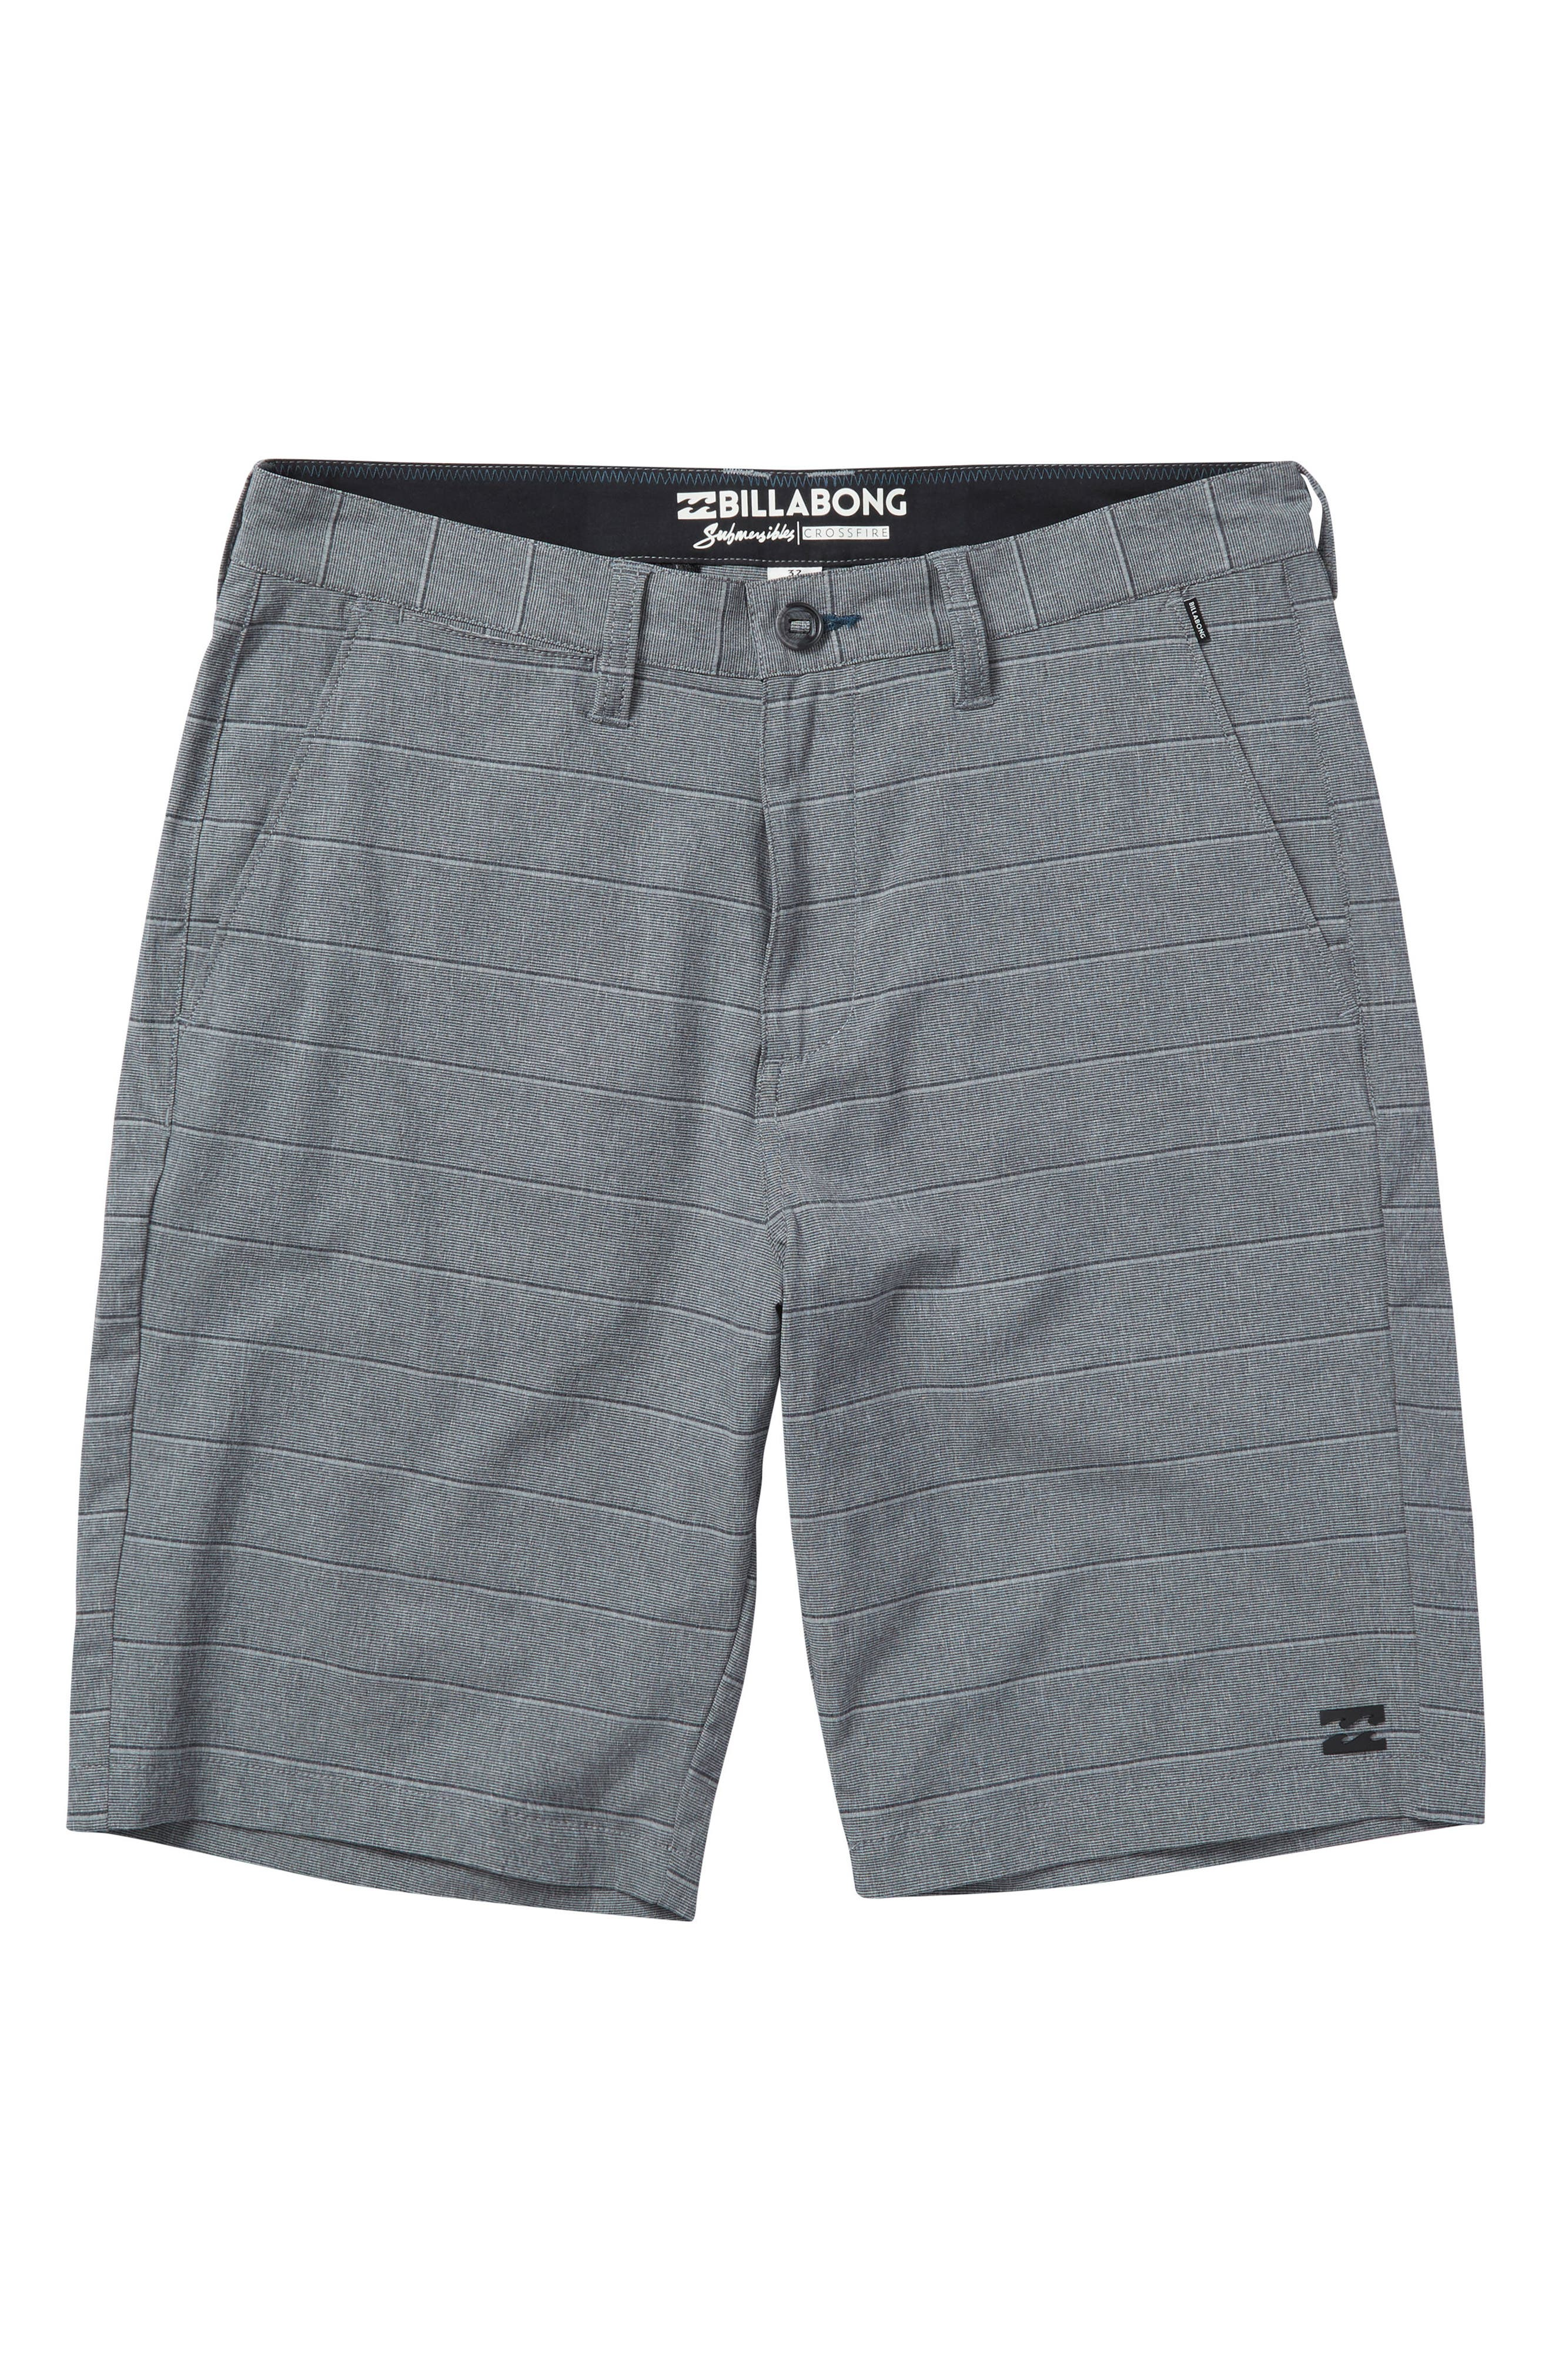 Billabong Crossfire X Stripe Hybrid Shorts (Big Boys)